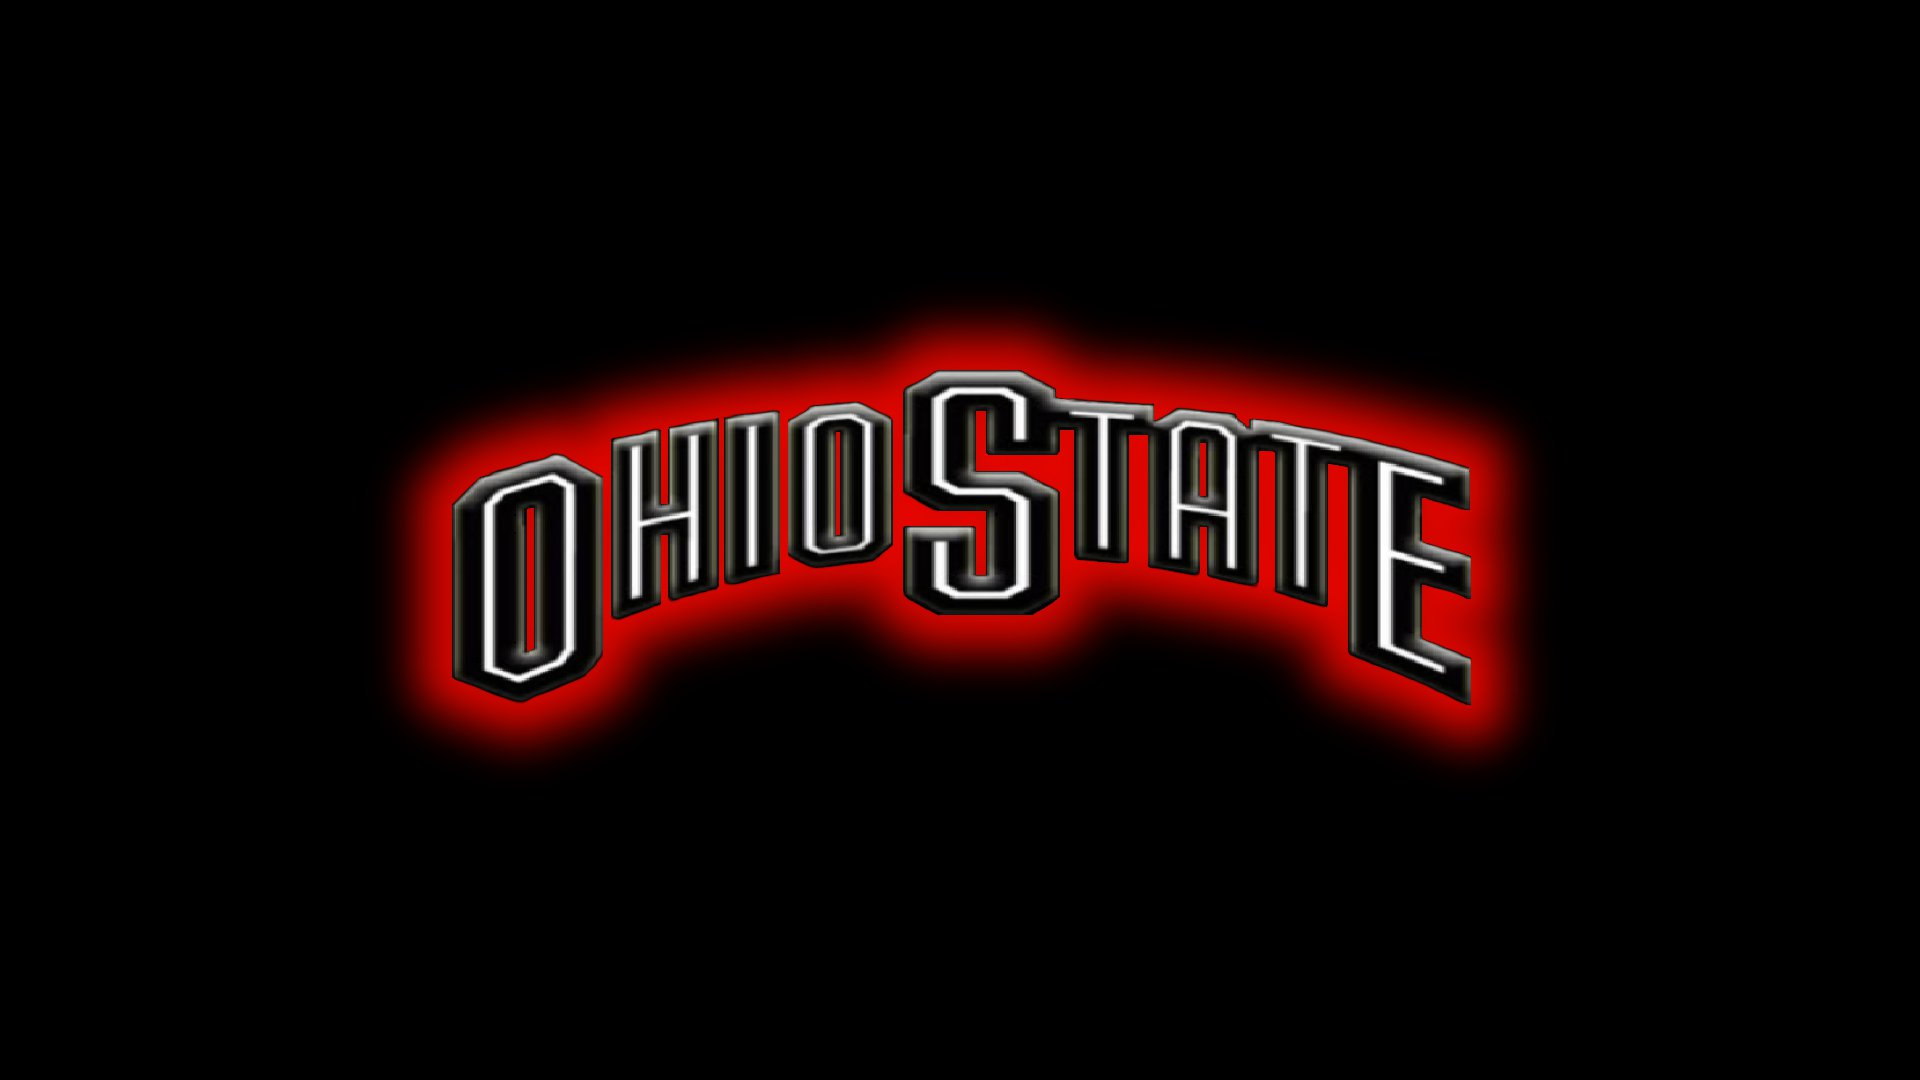 OSU Desktop Wallpaper 140   Ohio State Football Wallpaper 28970898 1920x1080